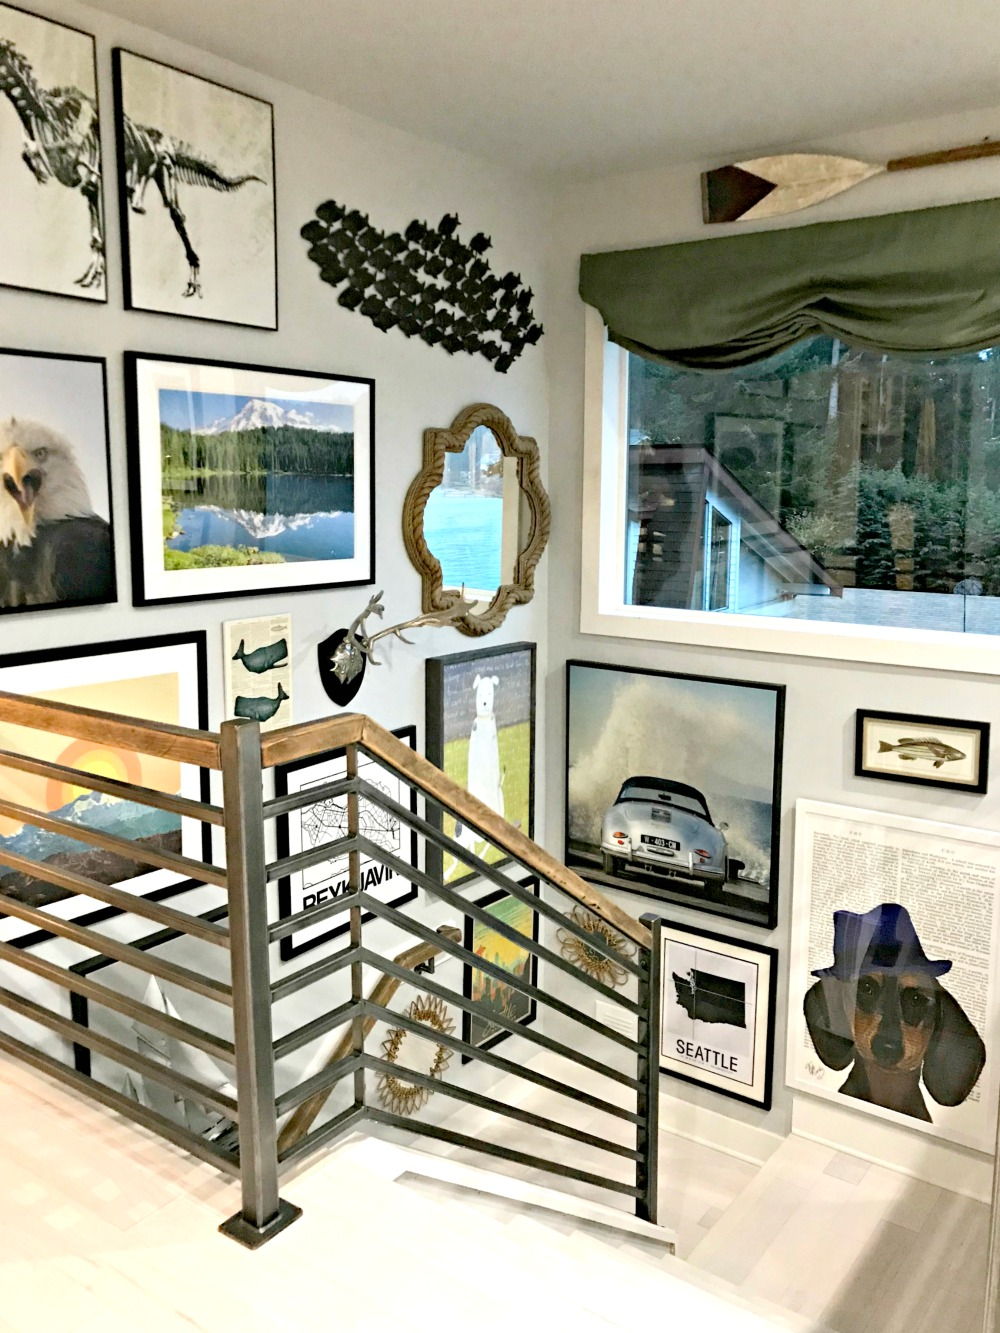 Interior Hgtv Photo Gallery my private tour recap of the 2018 hgtv dream home rachel teodoro design looks like you can safely hang up all your art and pictures because it gallery walls arent going any w